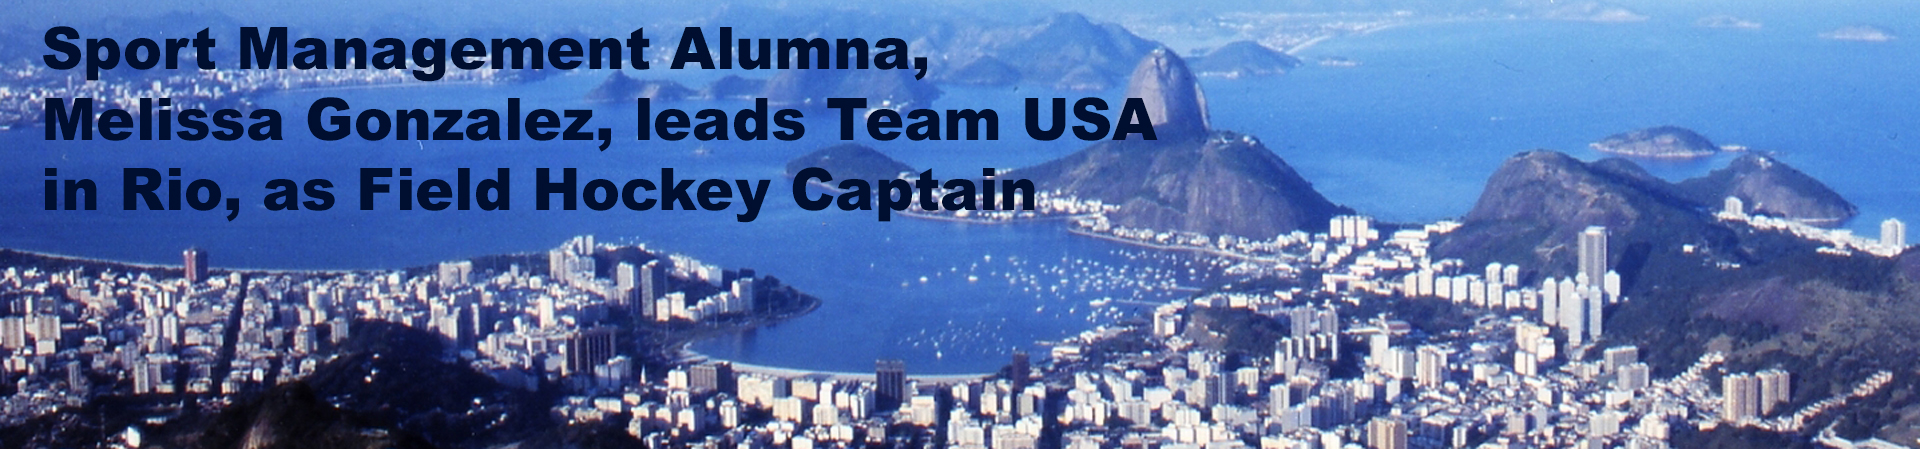 """sky view of brazil in honor of the olympics, banner reading """"Sport management Alumna, Melissa Gonzalez, leads Team USA in Rio, as Field Hockey Captain"""""""